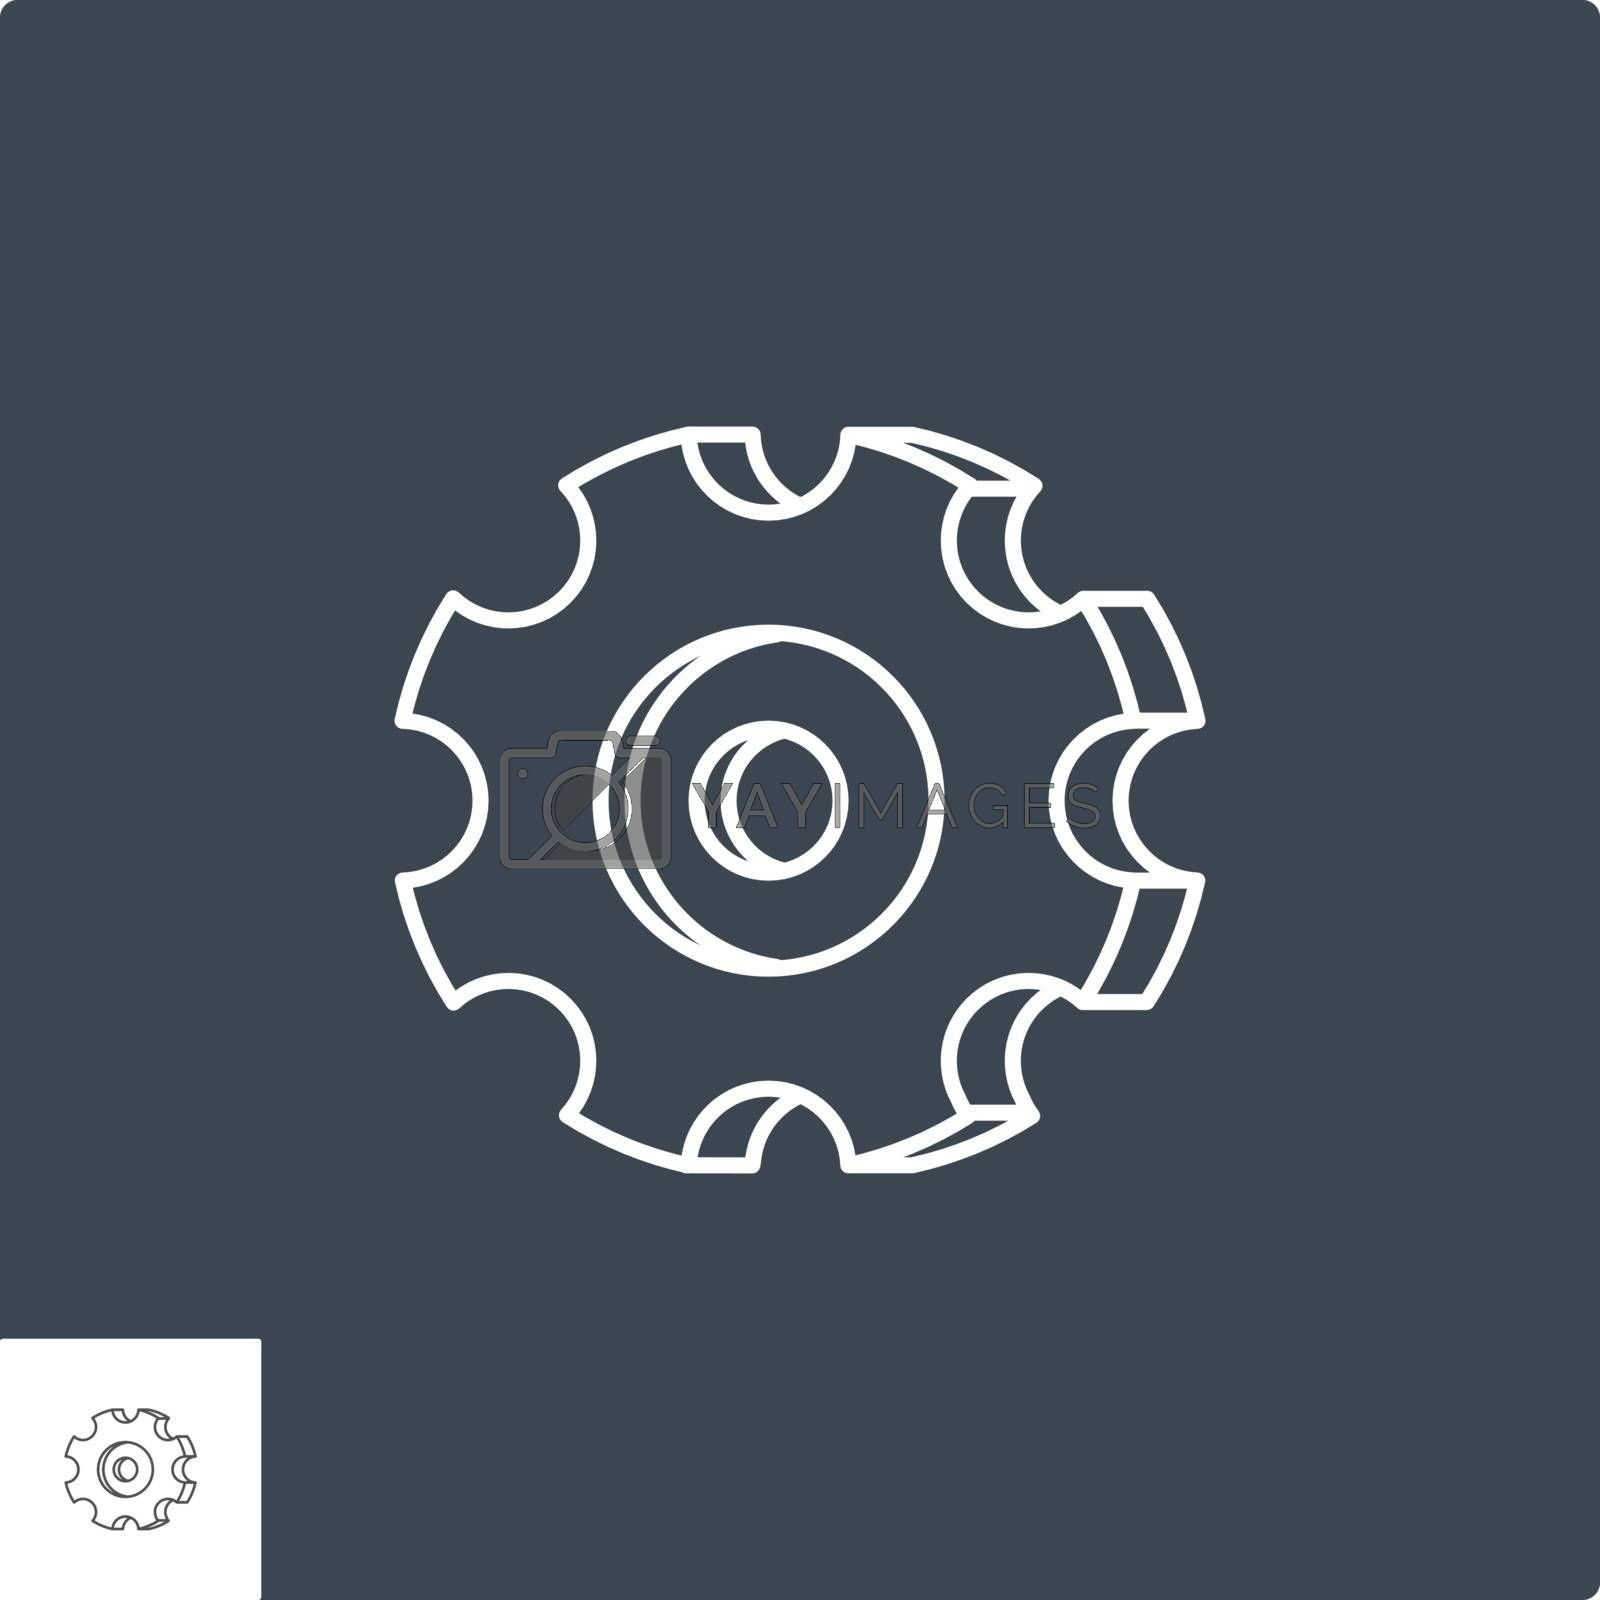 Gear Icon. Gear Related Vector Line Icon. Isolated on Black Background. Editable Stroke.